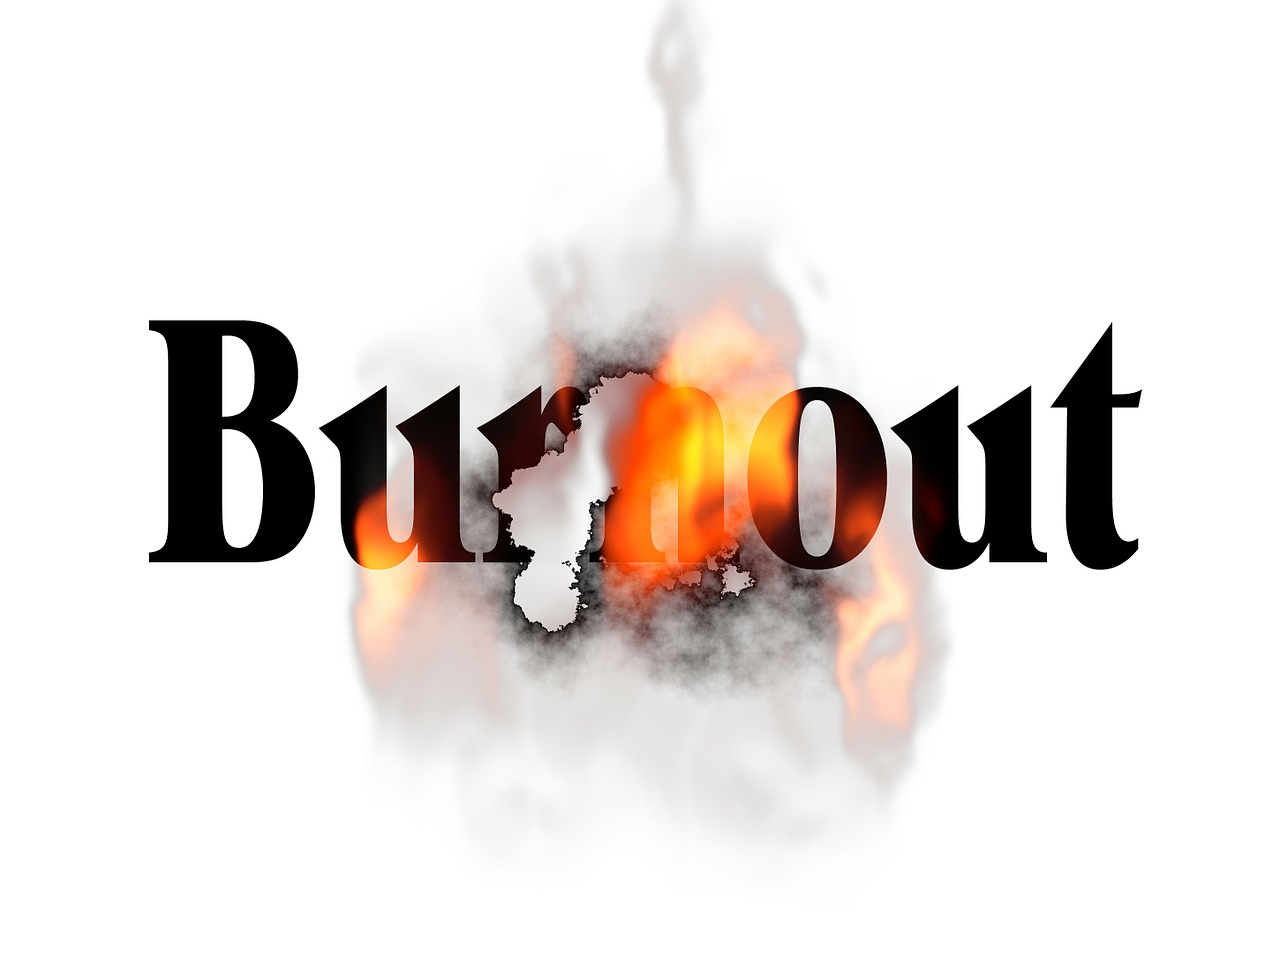 The picture shows the text burnout and there is a flame on top of the text